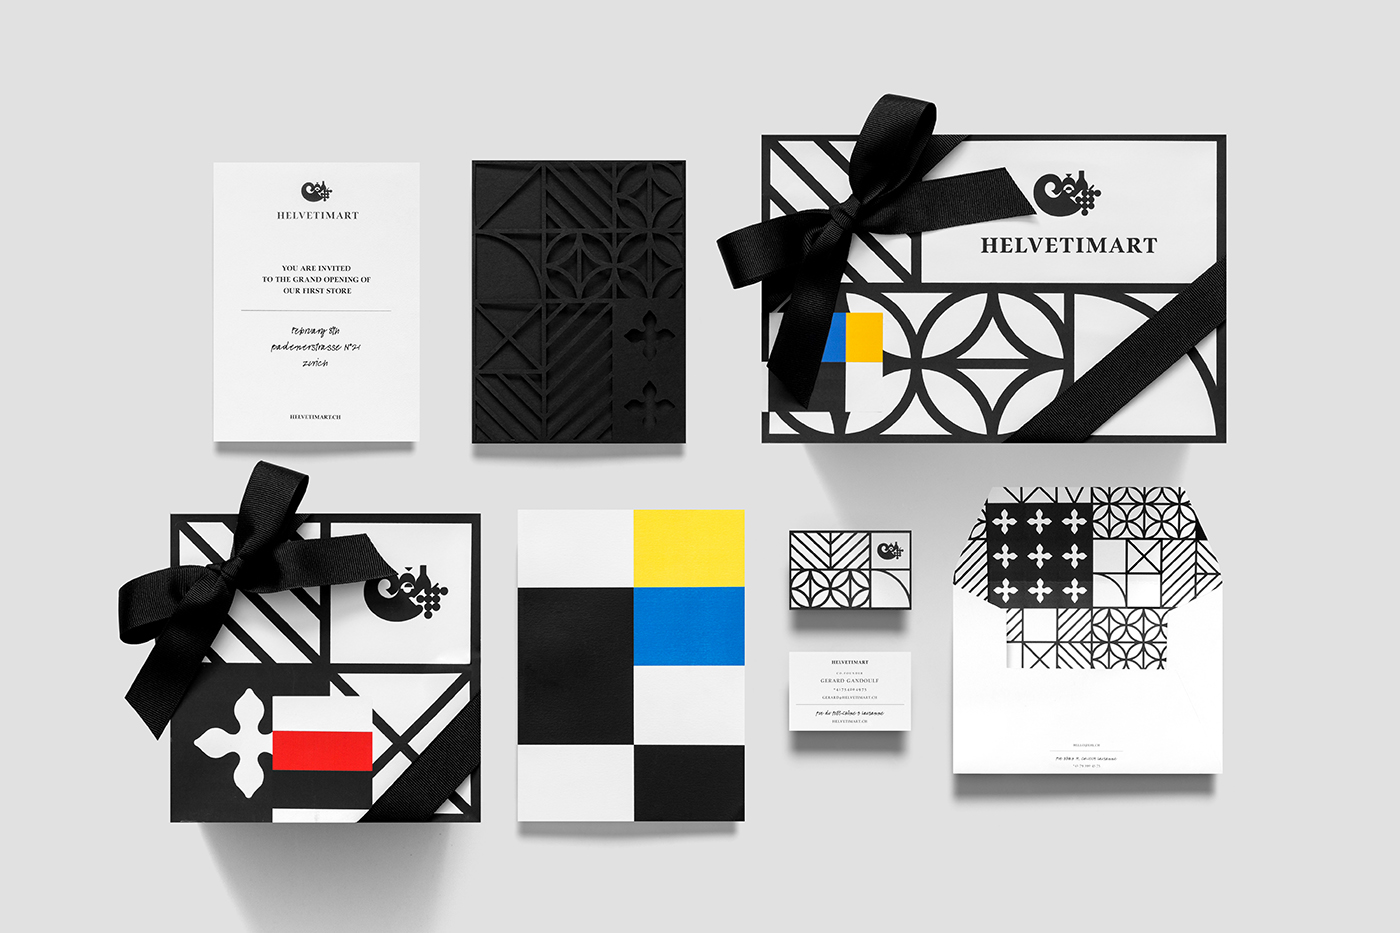 02-Helvetimart-Switzerland-Branding-Packaging-Stationery-Anagrama-Mexico-BPO